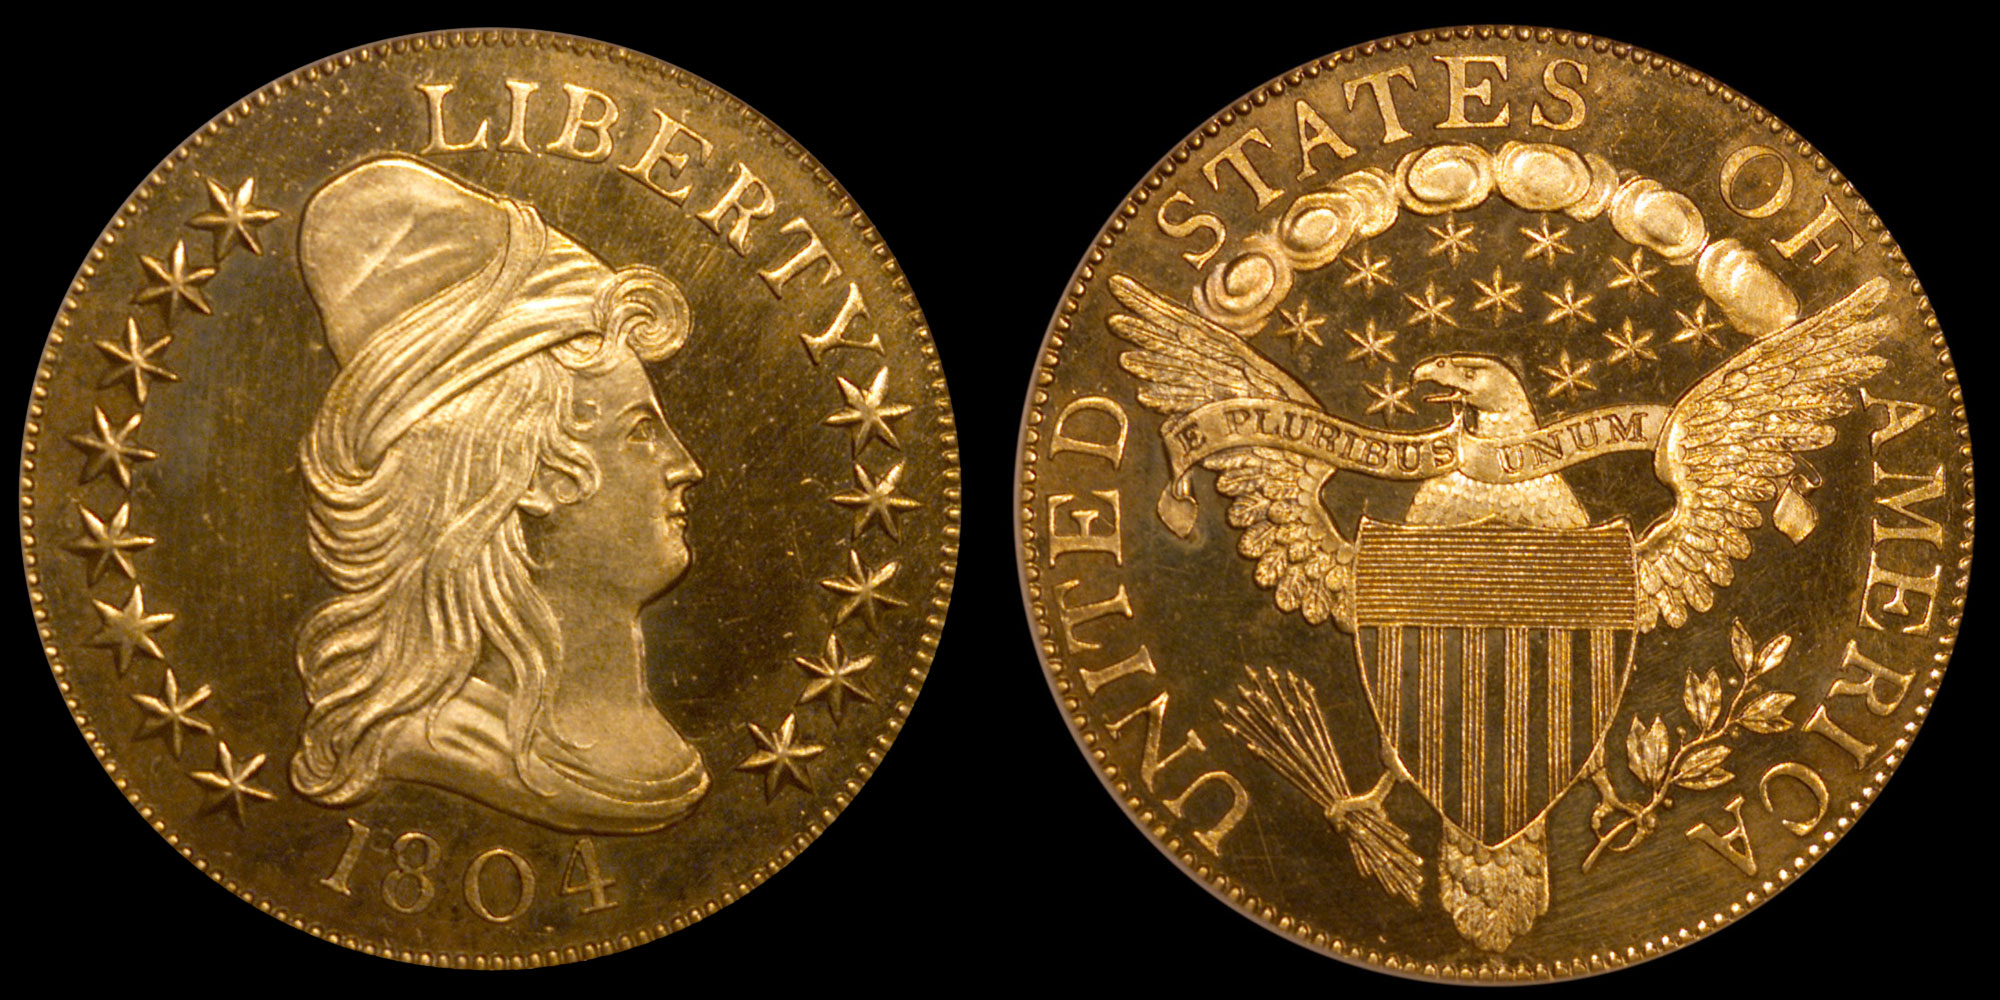 1804 Gold Eagle NGC PF65 Ultra Cameo (Photo: Numismatic Guaranty Corporation)